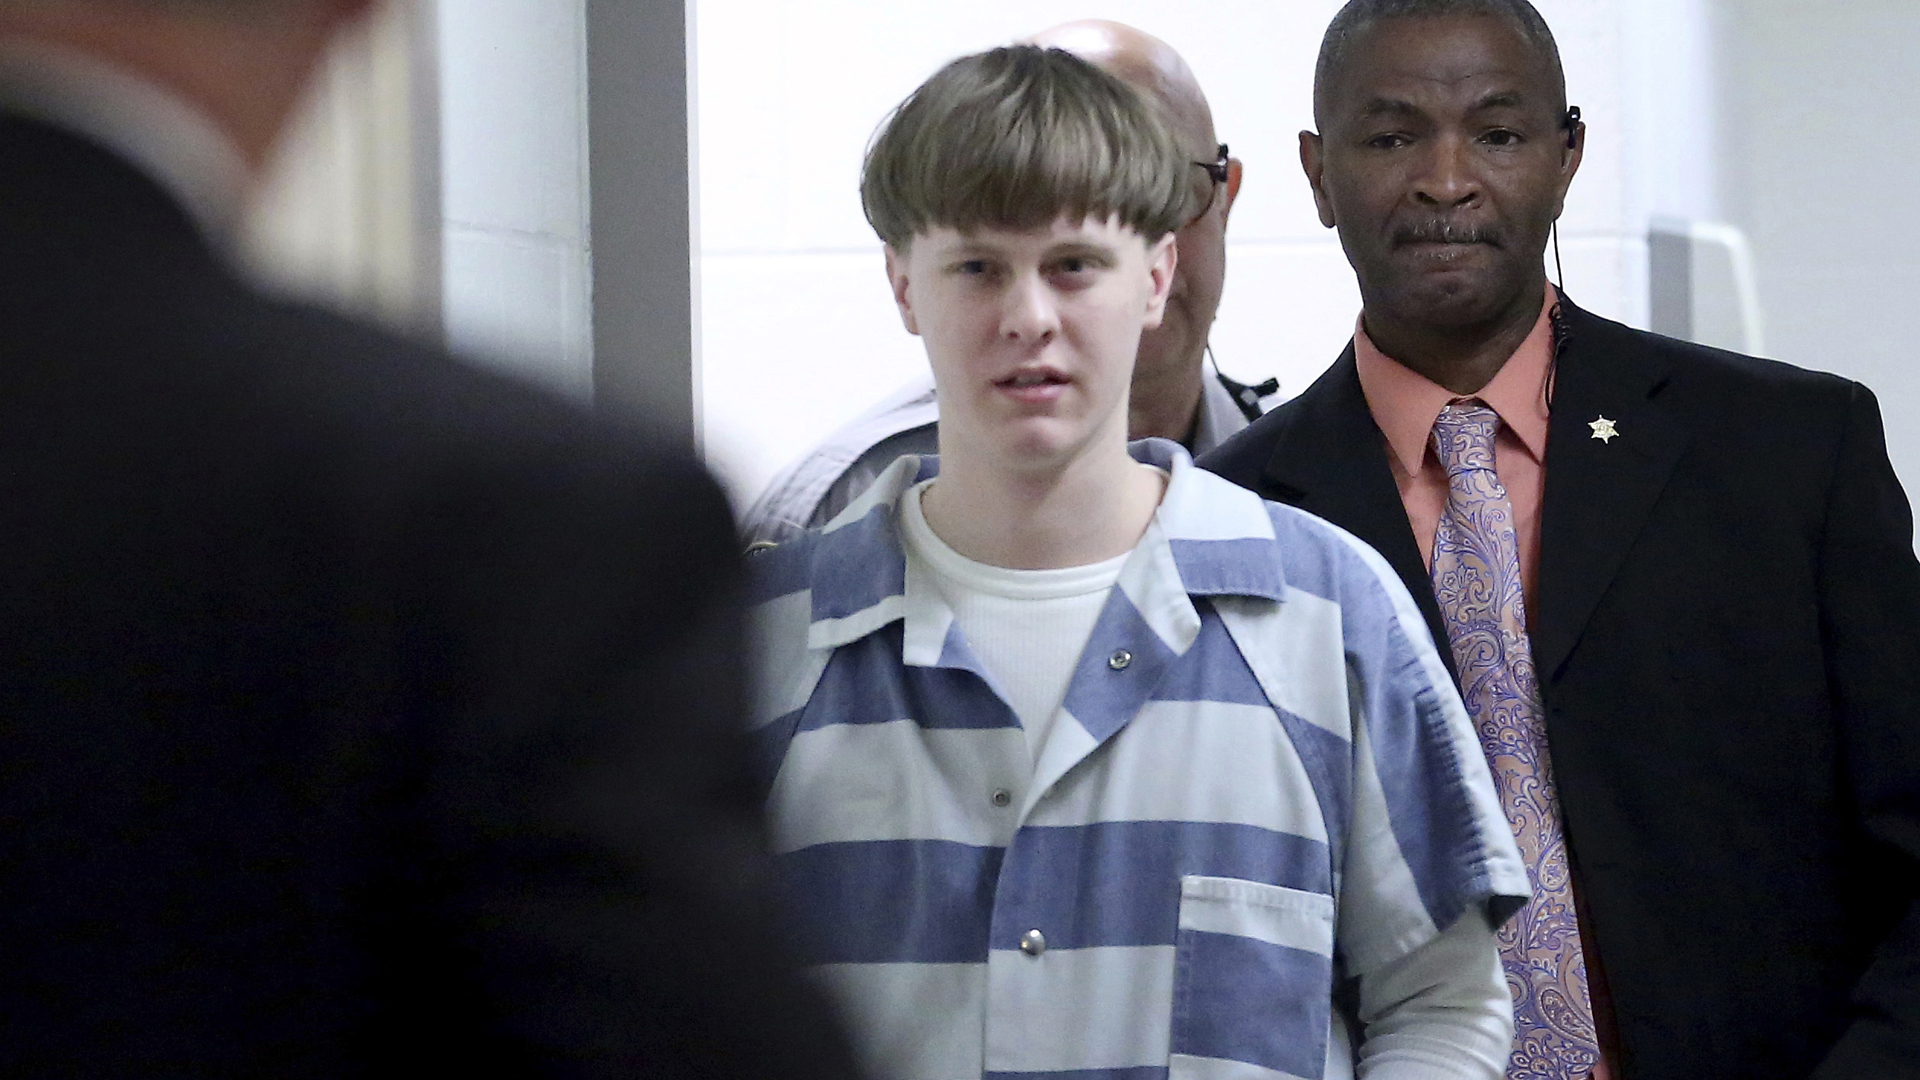 In this April 10, 2017, file photo, Dylann Roof enters the courtroom at the Charleston County Judicial Center to enter his guilty plea on murder charges in Charleston, S.C. (Grace Beahm/The Post And Courier via Associated Press, Pool)